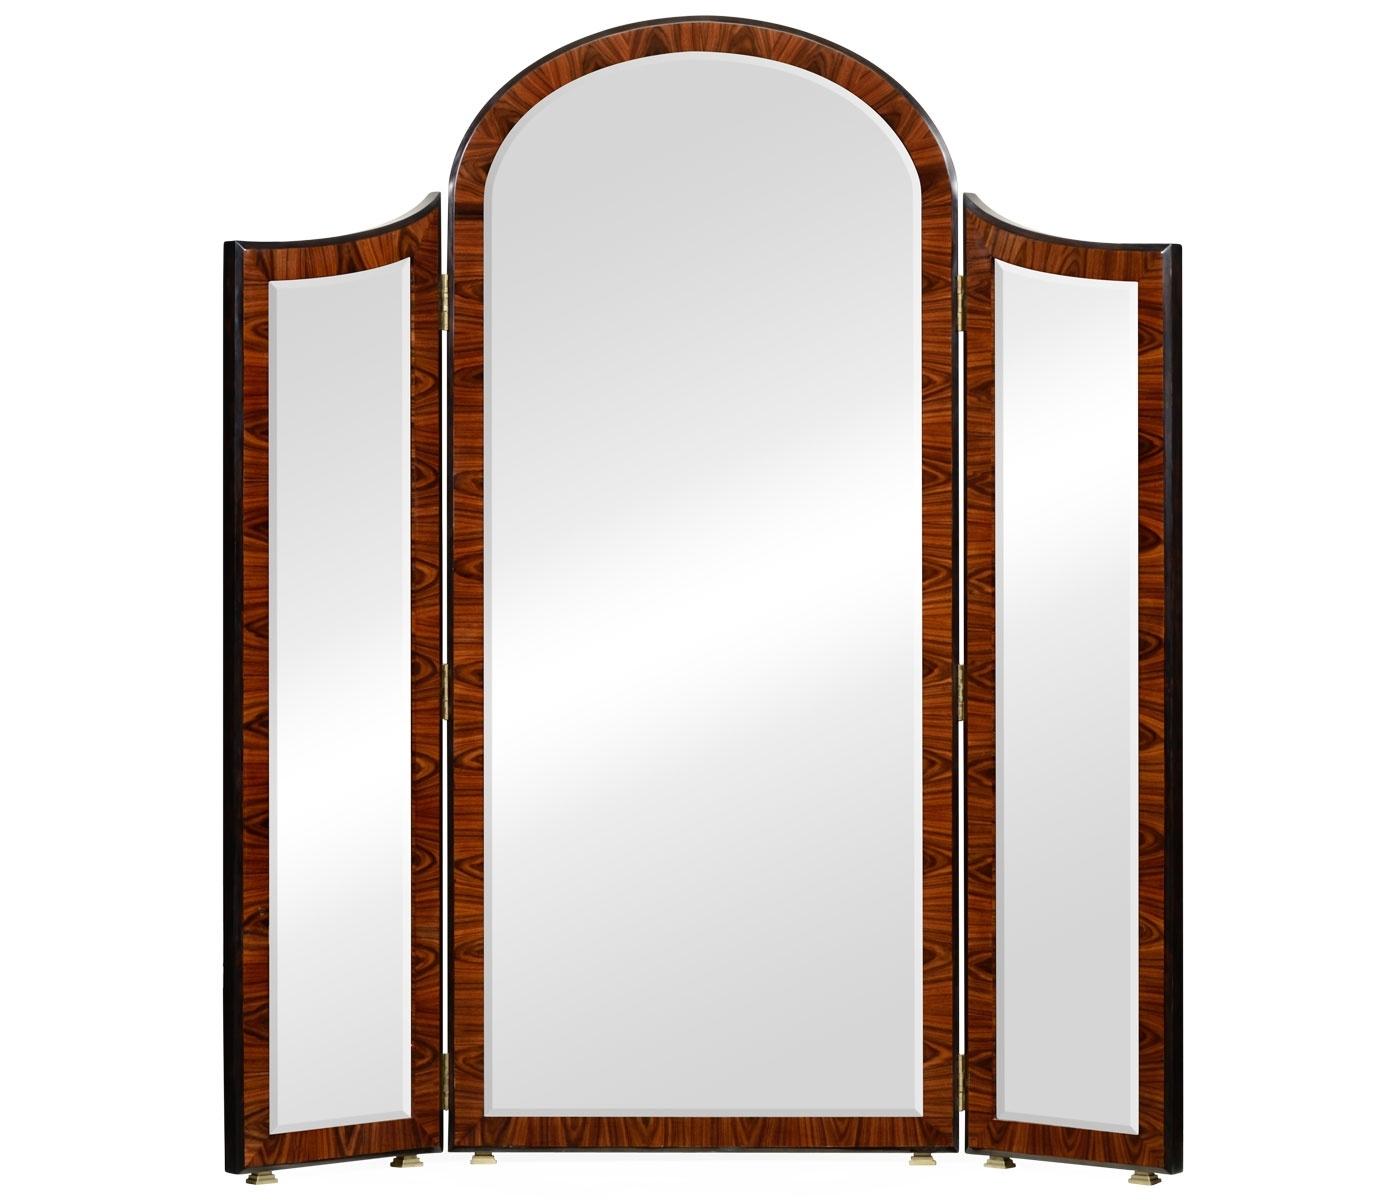 Art Deco Full Length Triple Dressing Mirror Swanky Interiors With Art Deco Full Length Mirror (View 7 of 15)